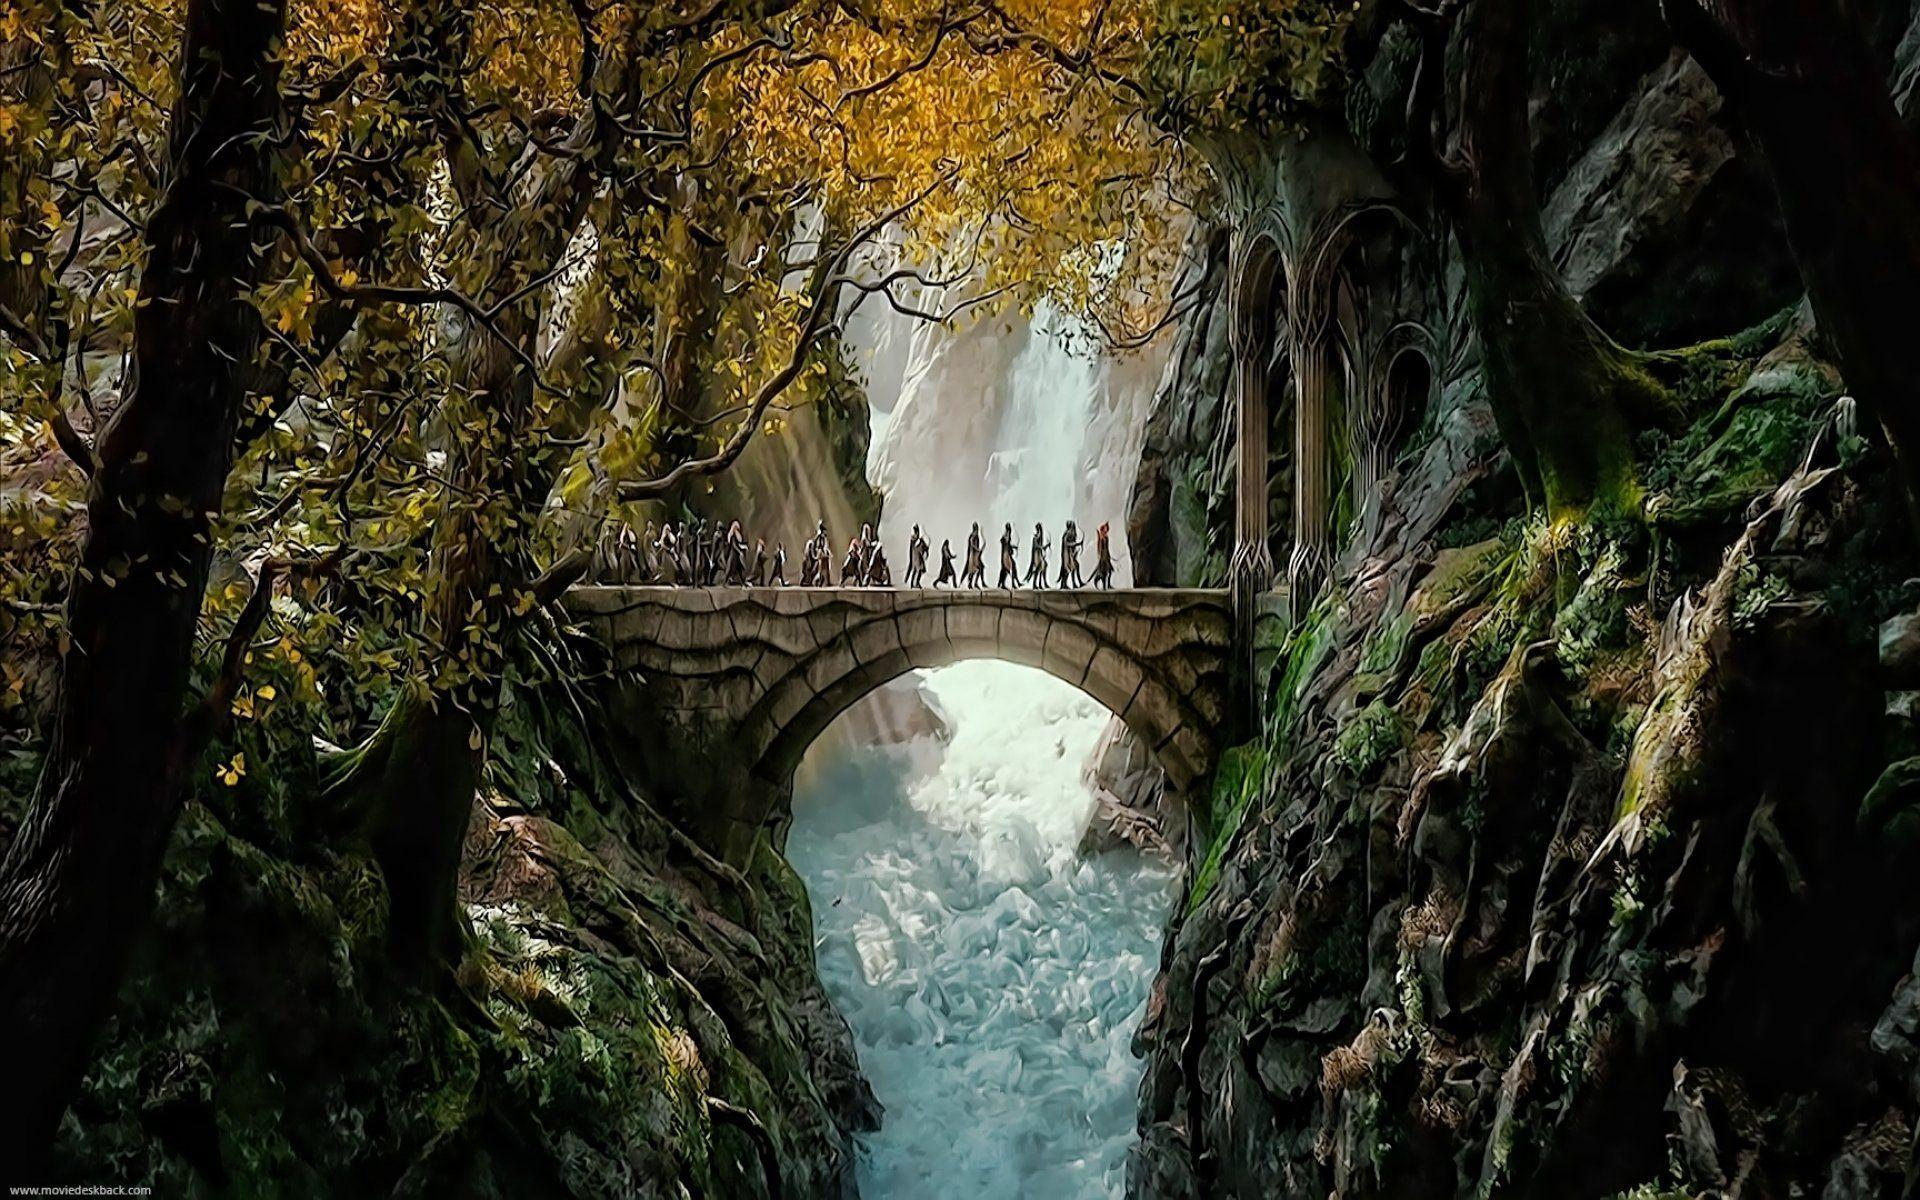 rivendell wallpaper - photo #13